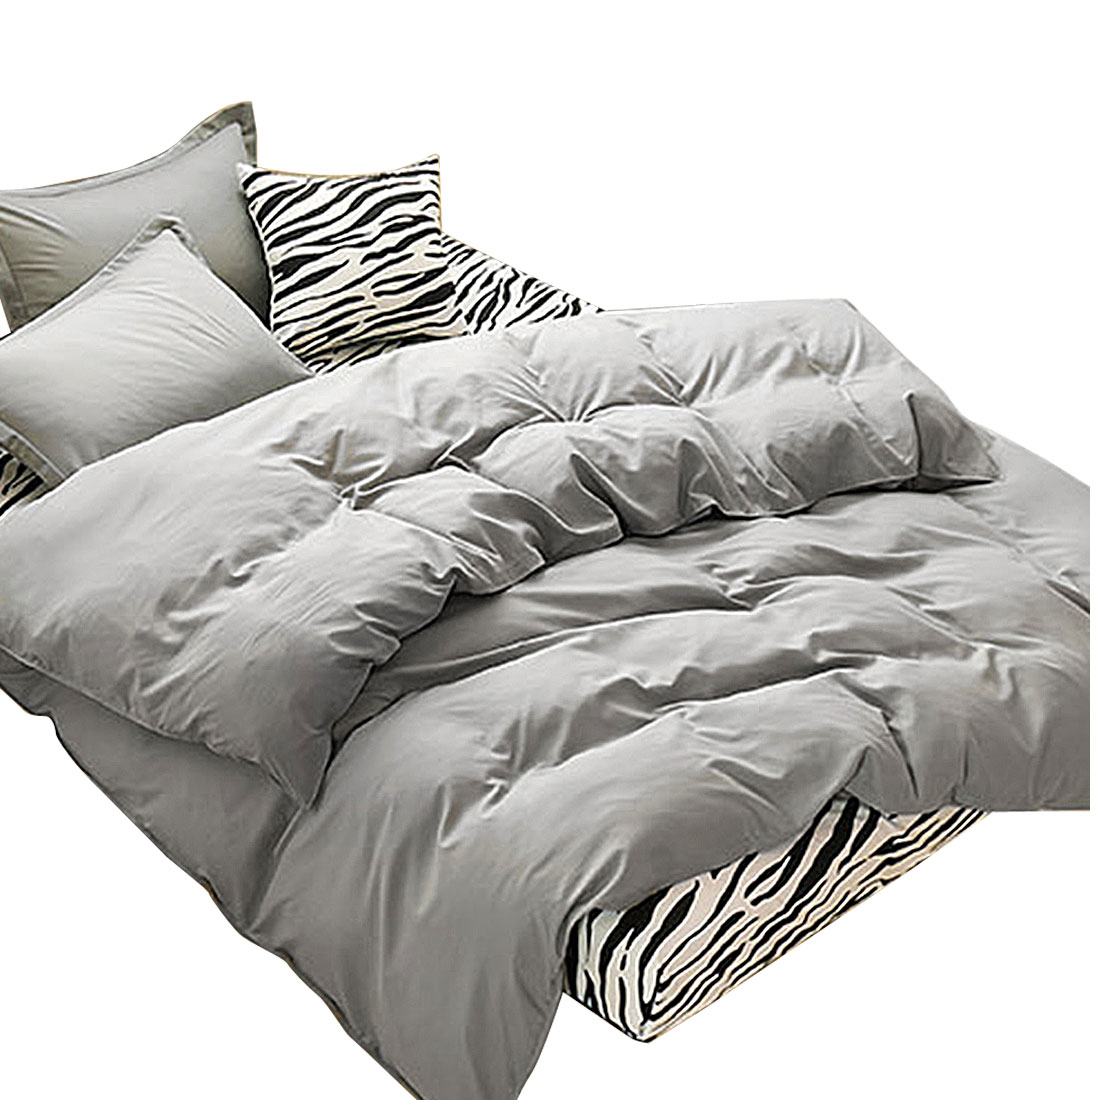 Bedroom Duvet Quilt Cover Pillowcase Bedding Set Bedclothes Gray Queen Size